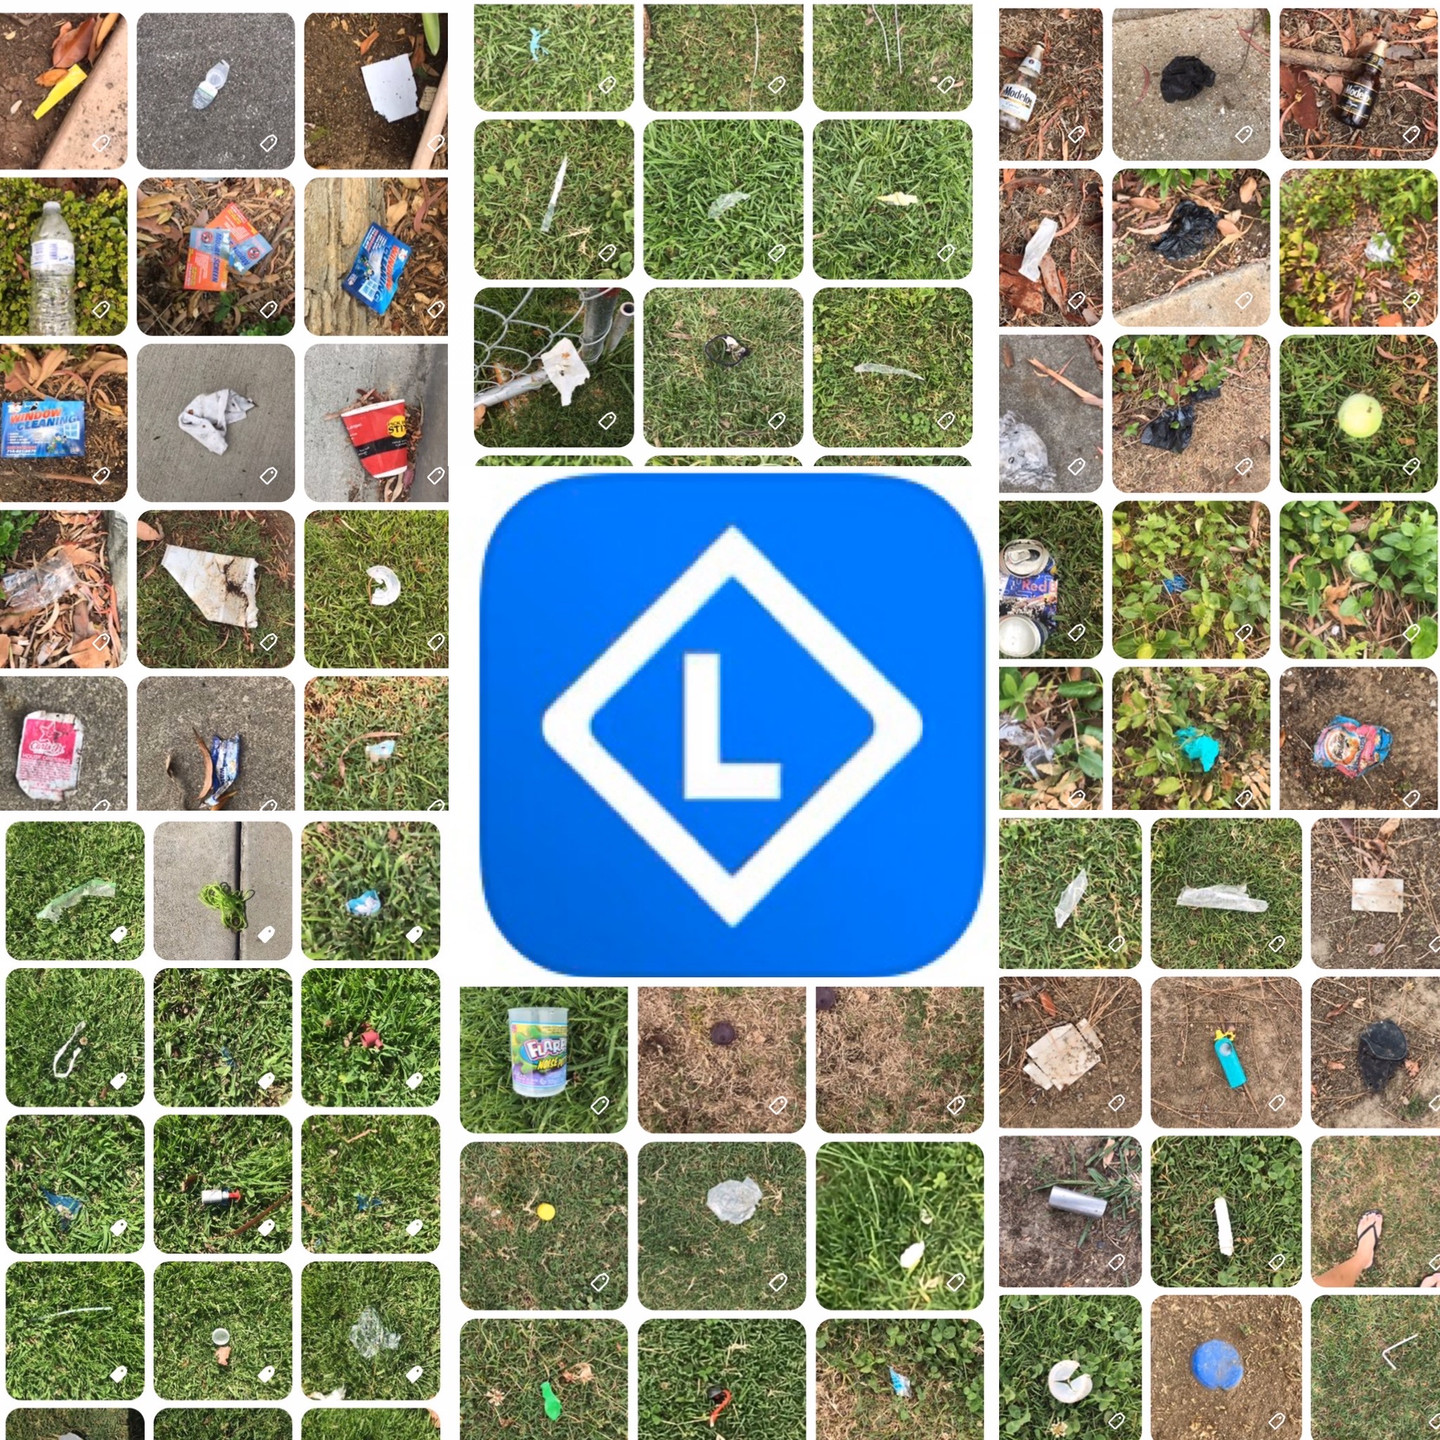 Trash collected on Litterati App